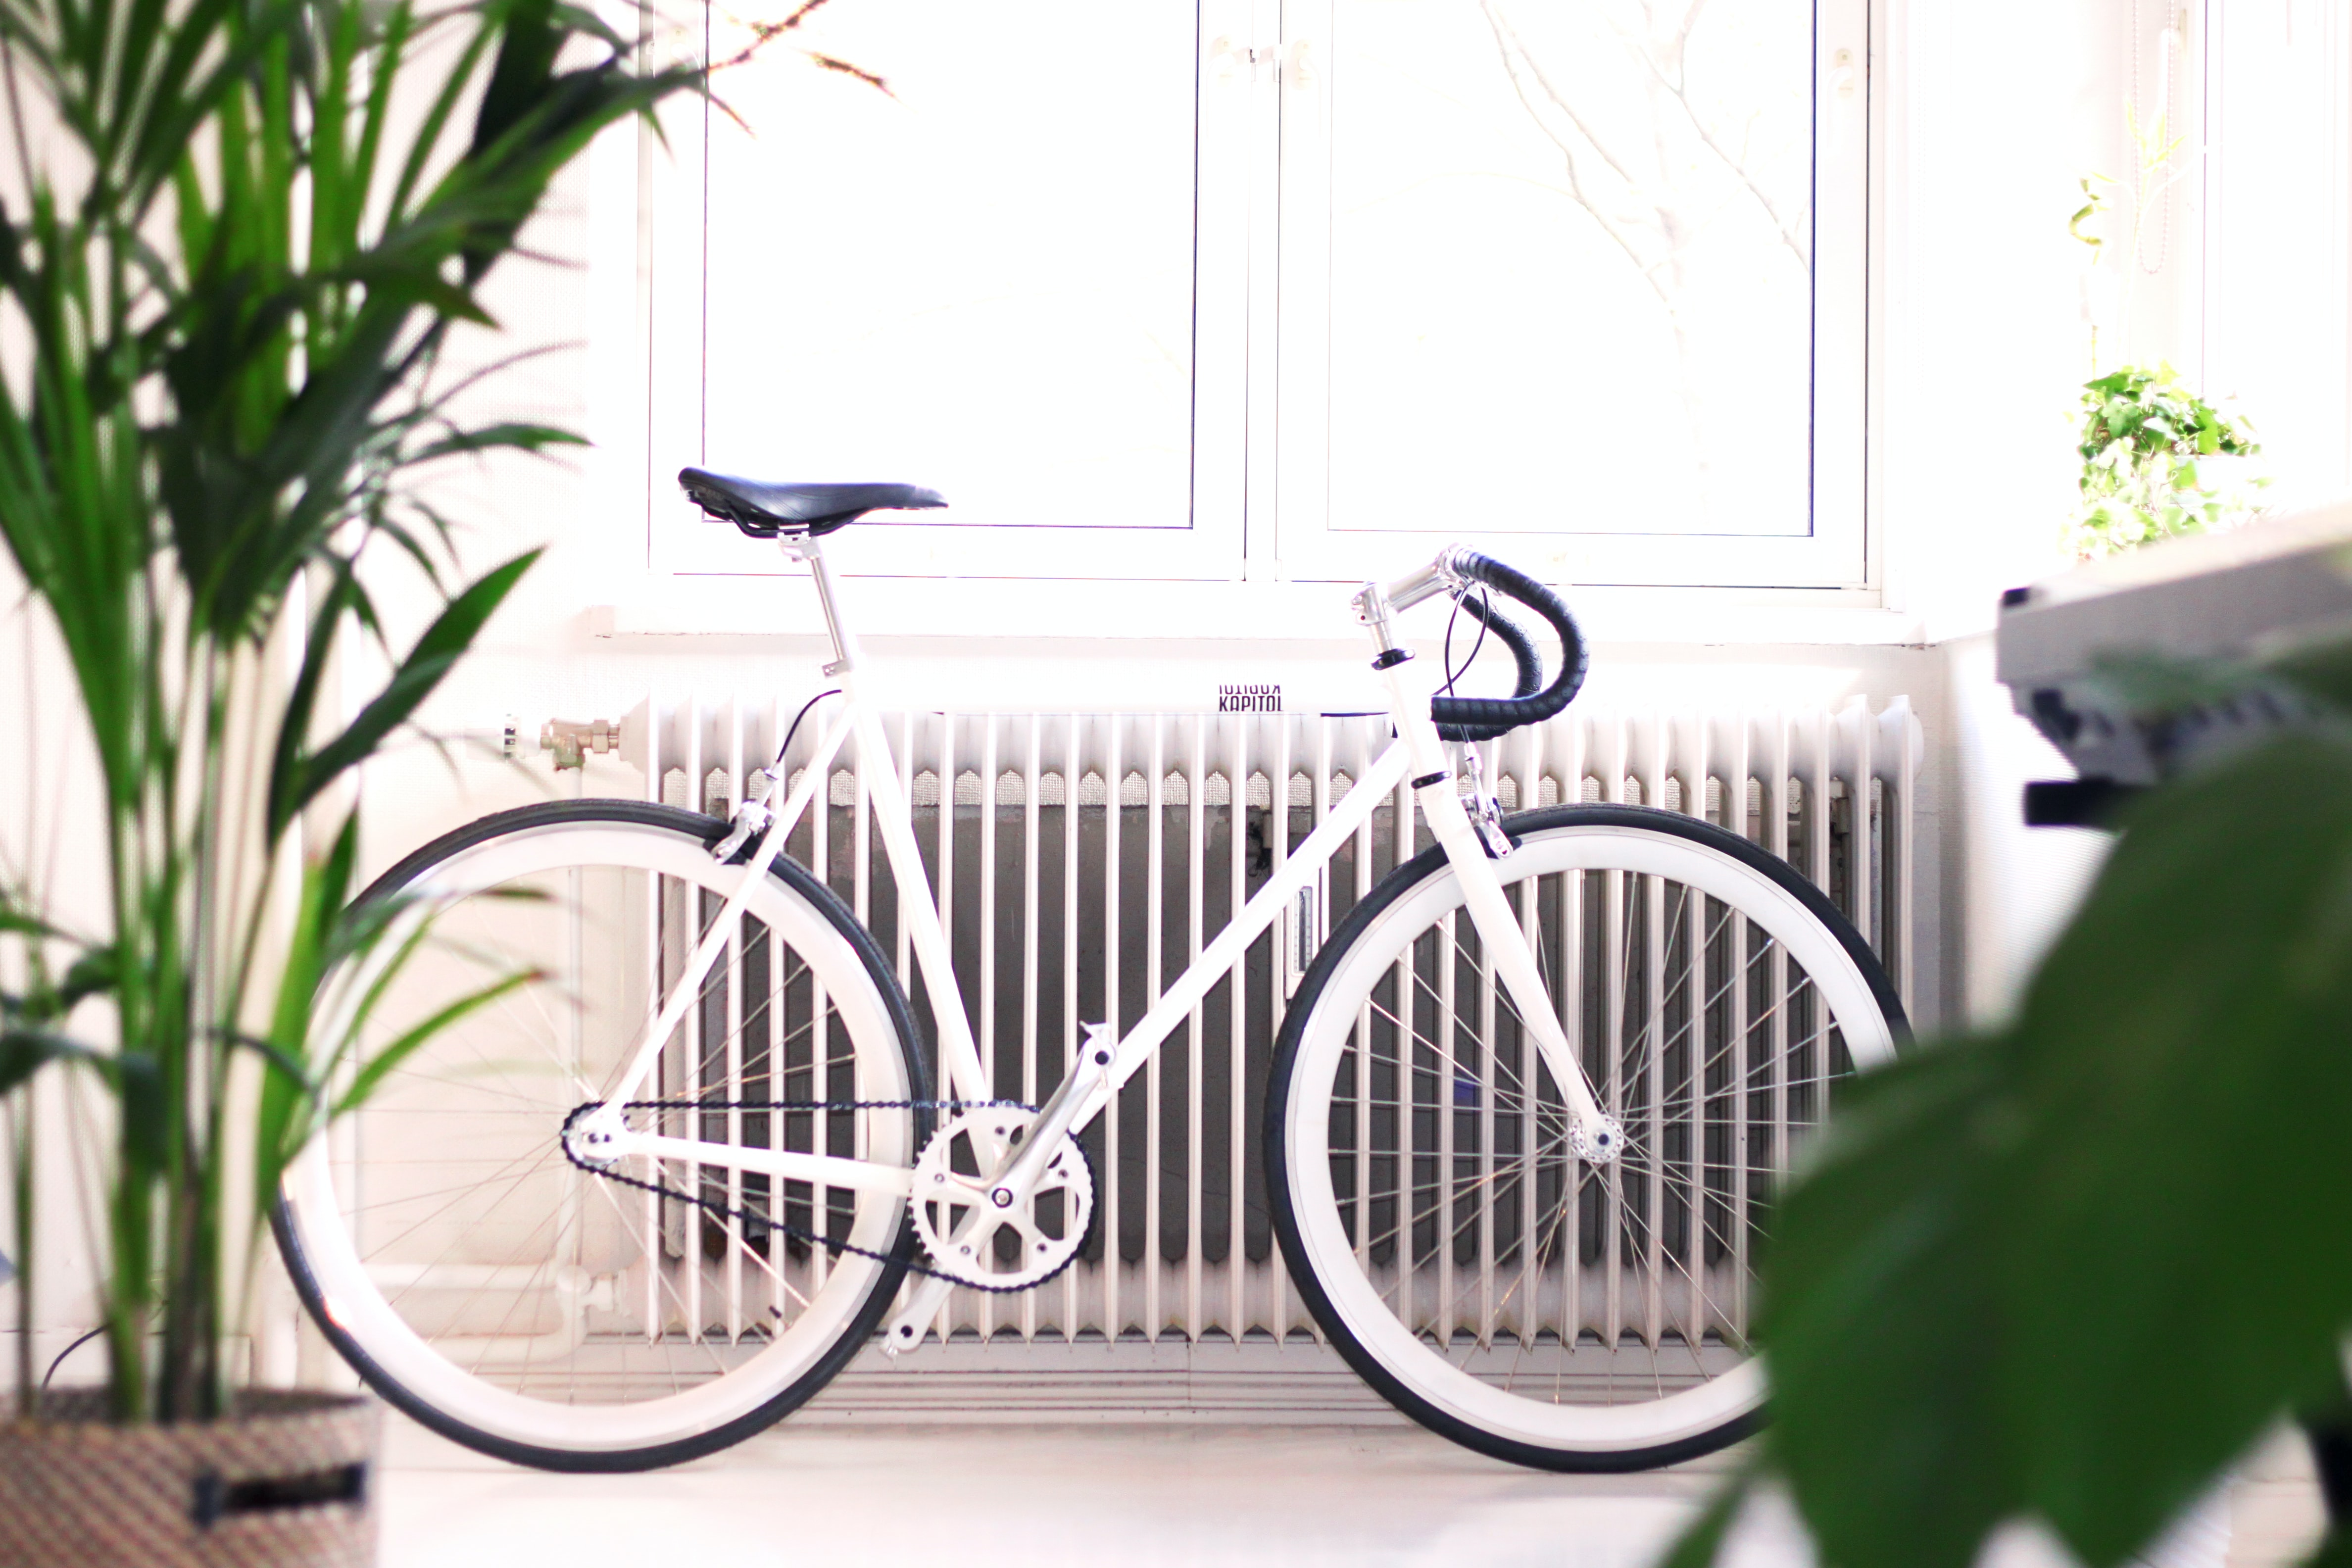 White bike leaning against radiator in doors with plant near window with light streaming in, Oslo